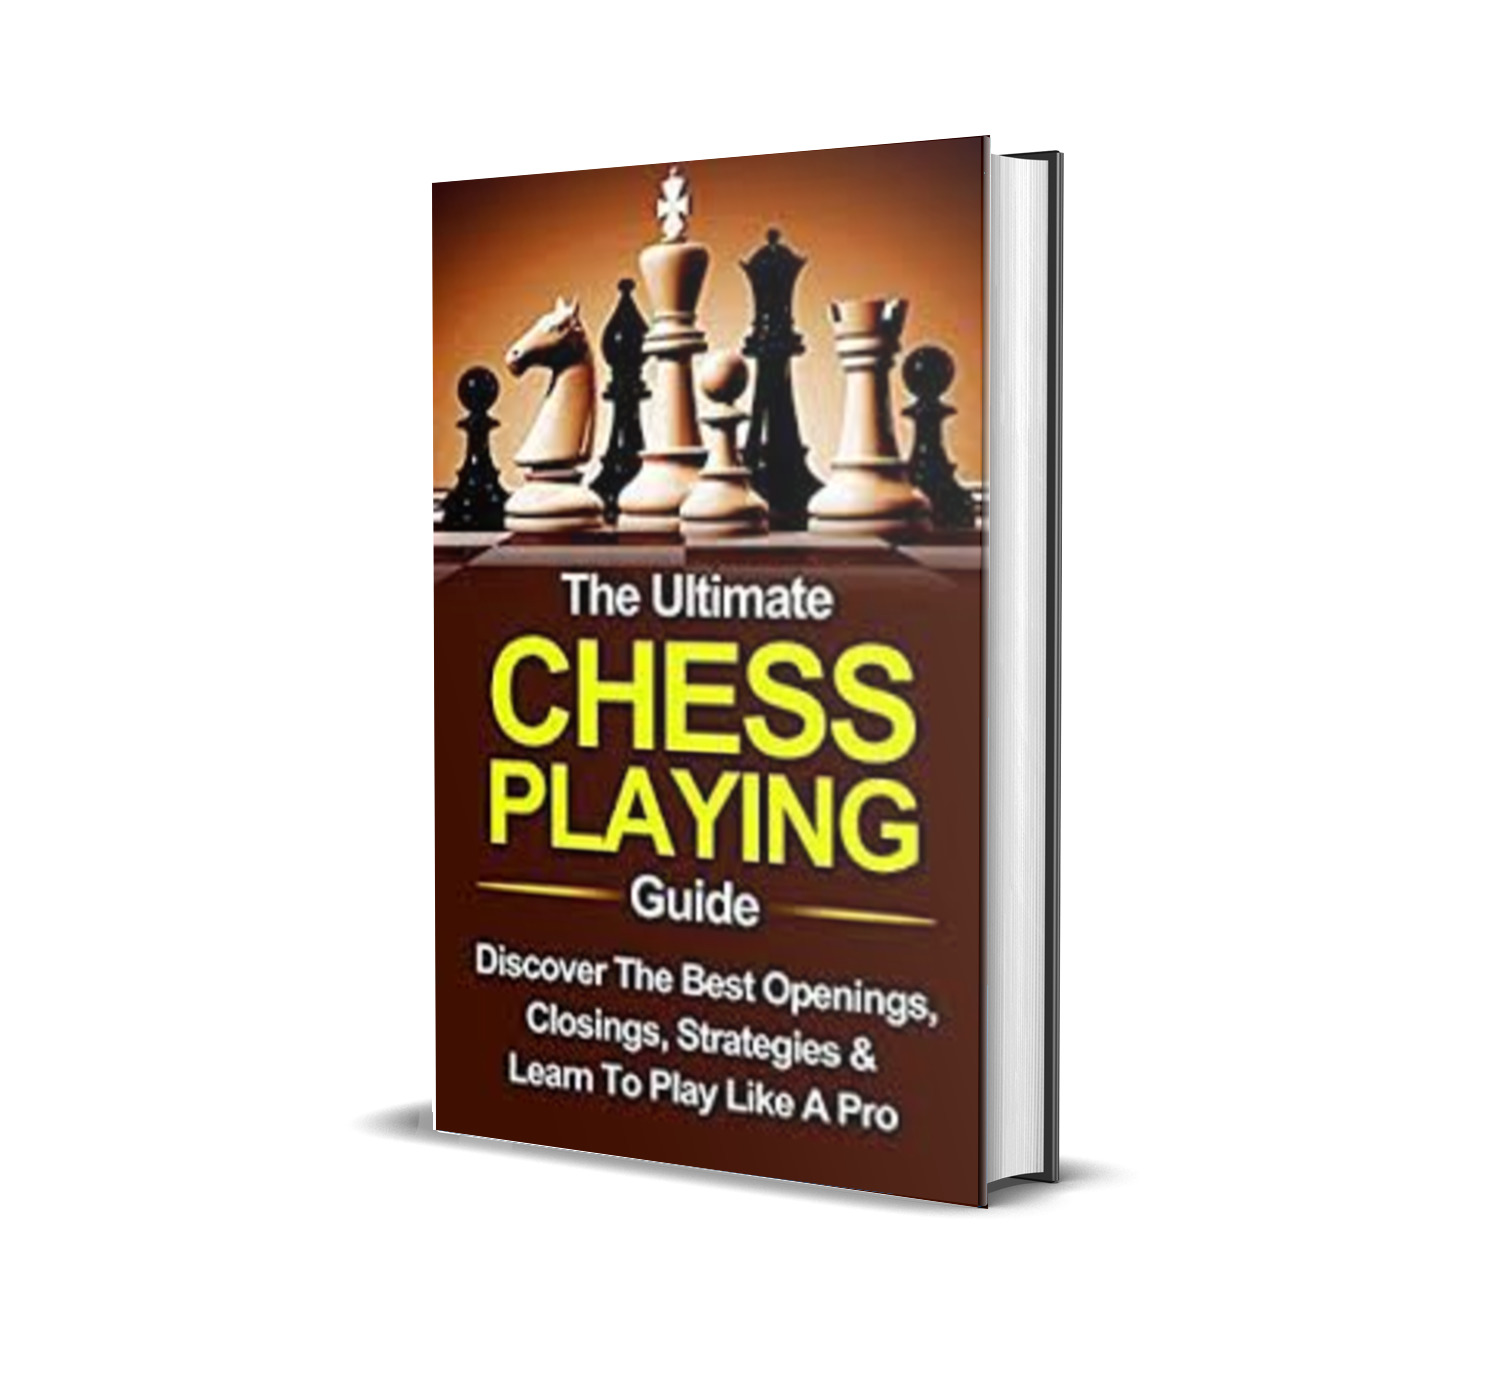 CHESS The Ultimate Chess Playing Guide-Terence North